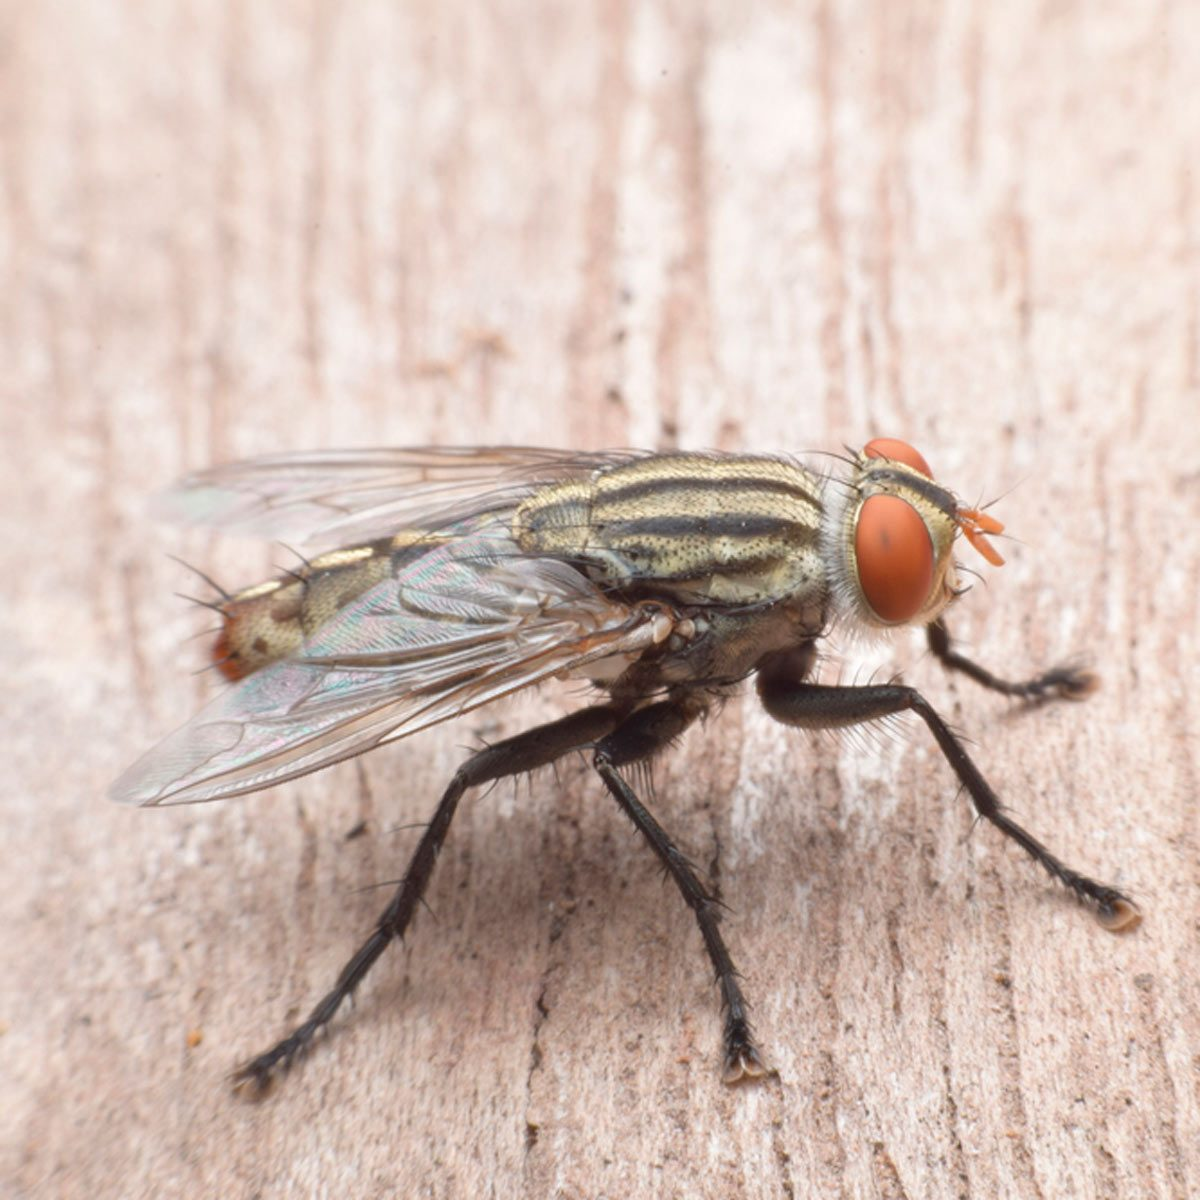 How To Get Rid Of Cluster Flies Family Handyman